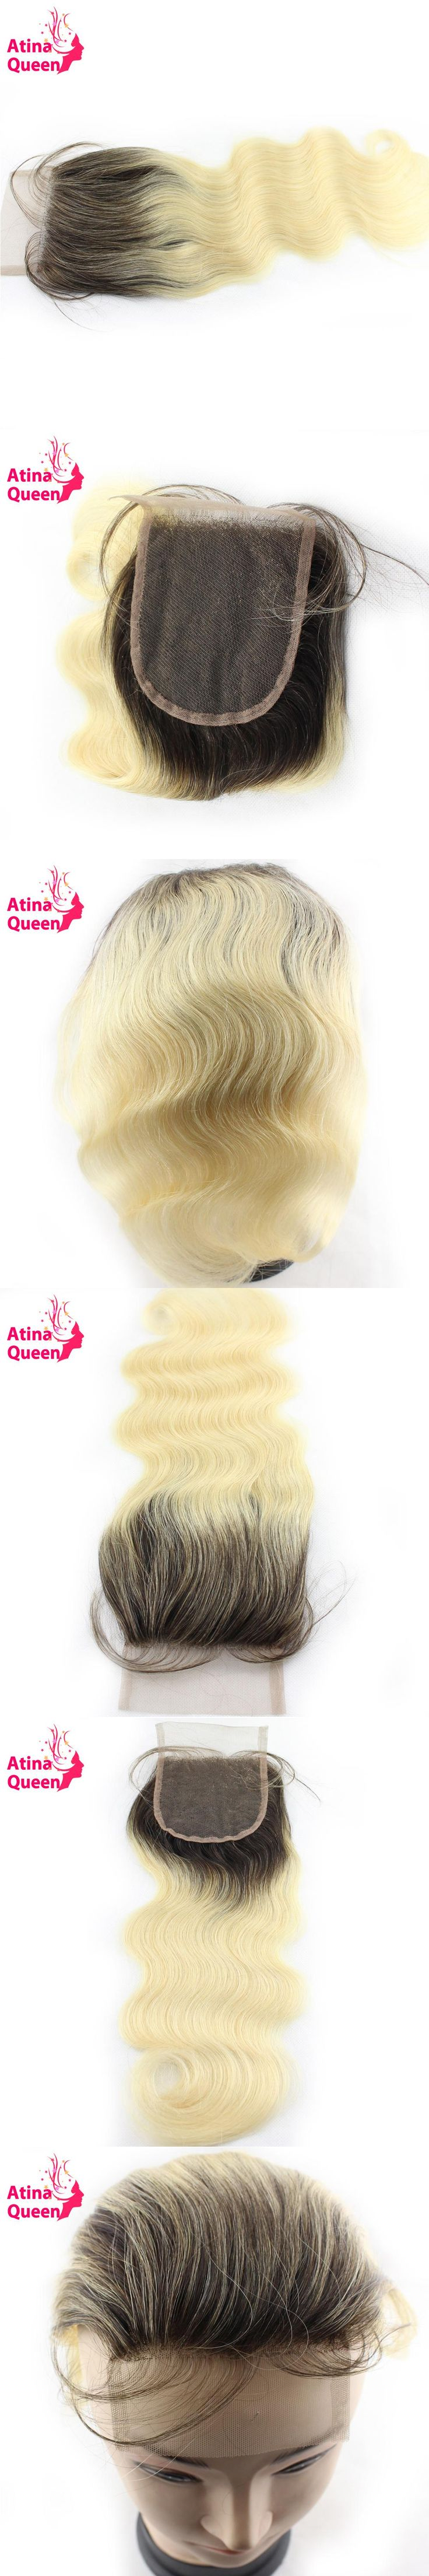 Atina Queen 1b 613 Body Wave 4x4 Lace Closure with Baby Hair Products Dark Roots Blonde 100% Remy Ombre Human Hair Extensions